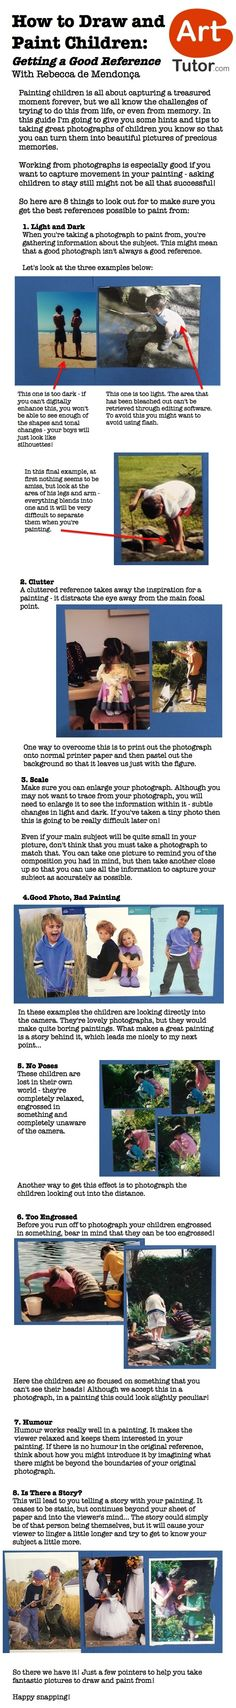 Do you ever struggle to get good reference photographs of children to turn into beautiful paintings? Have a look at this guide to find out what kind of photos make good paintings and what to avoid.